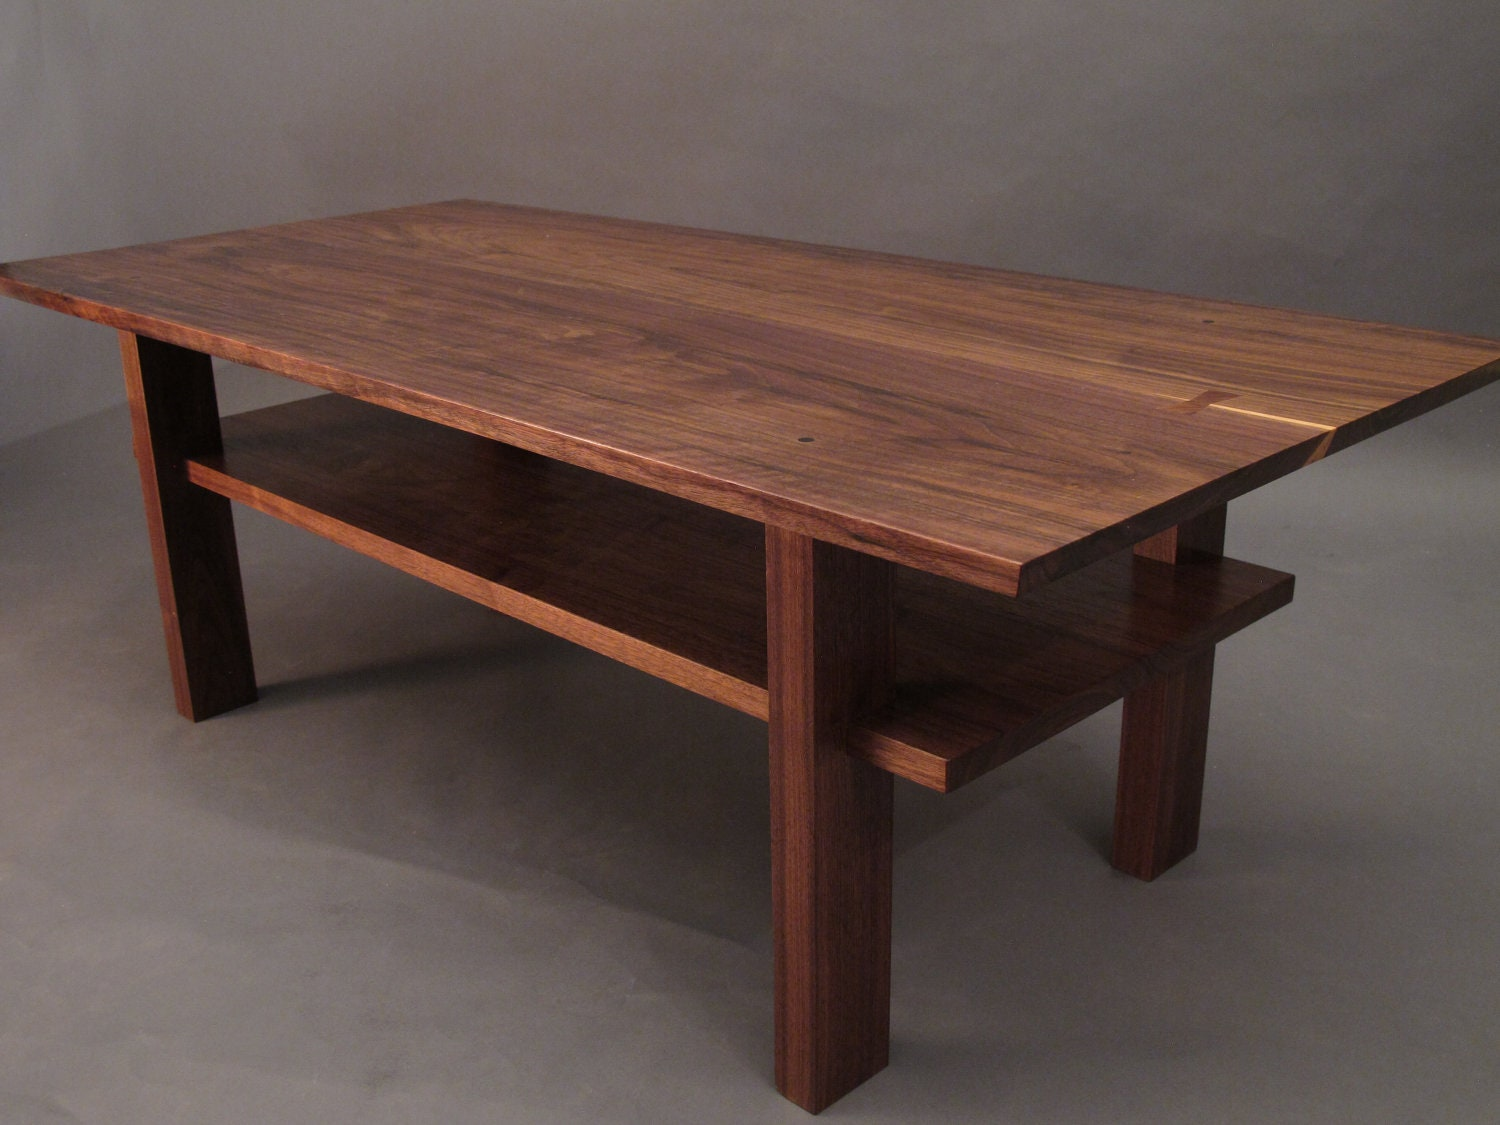 Small Wooden Tables ~ Walnut coffee table small wood tables for living room narrow